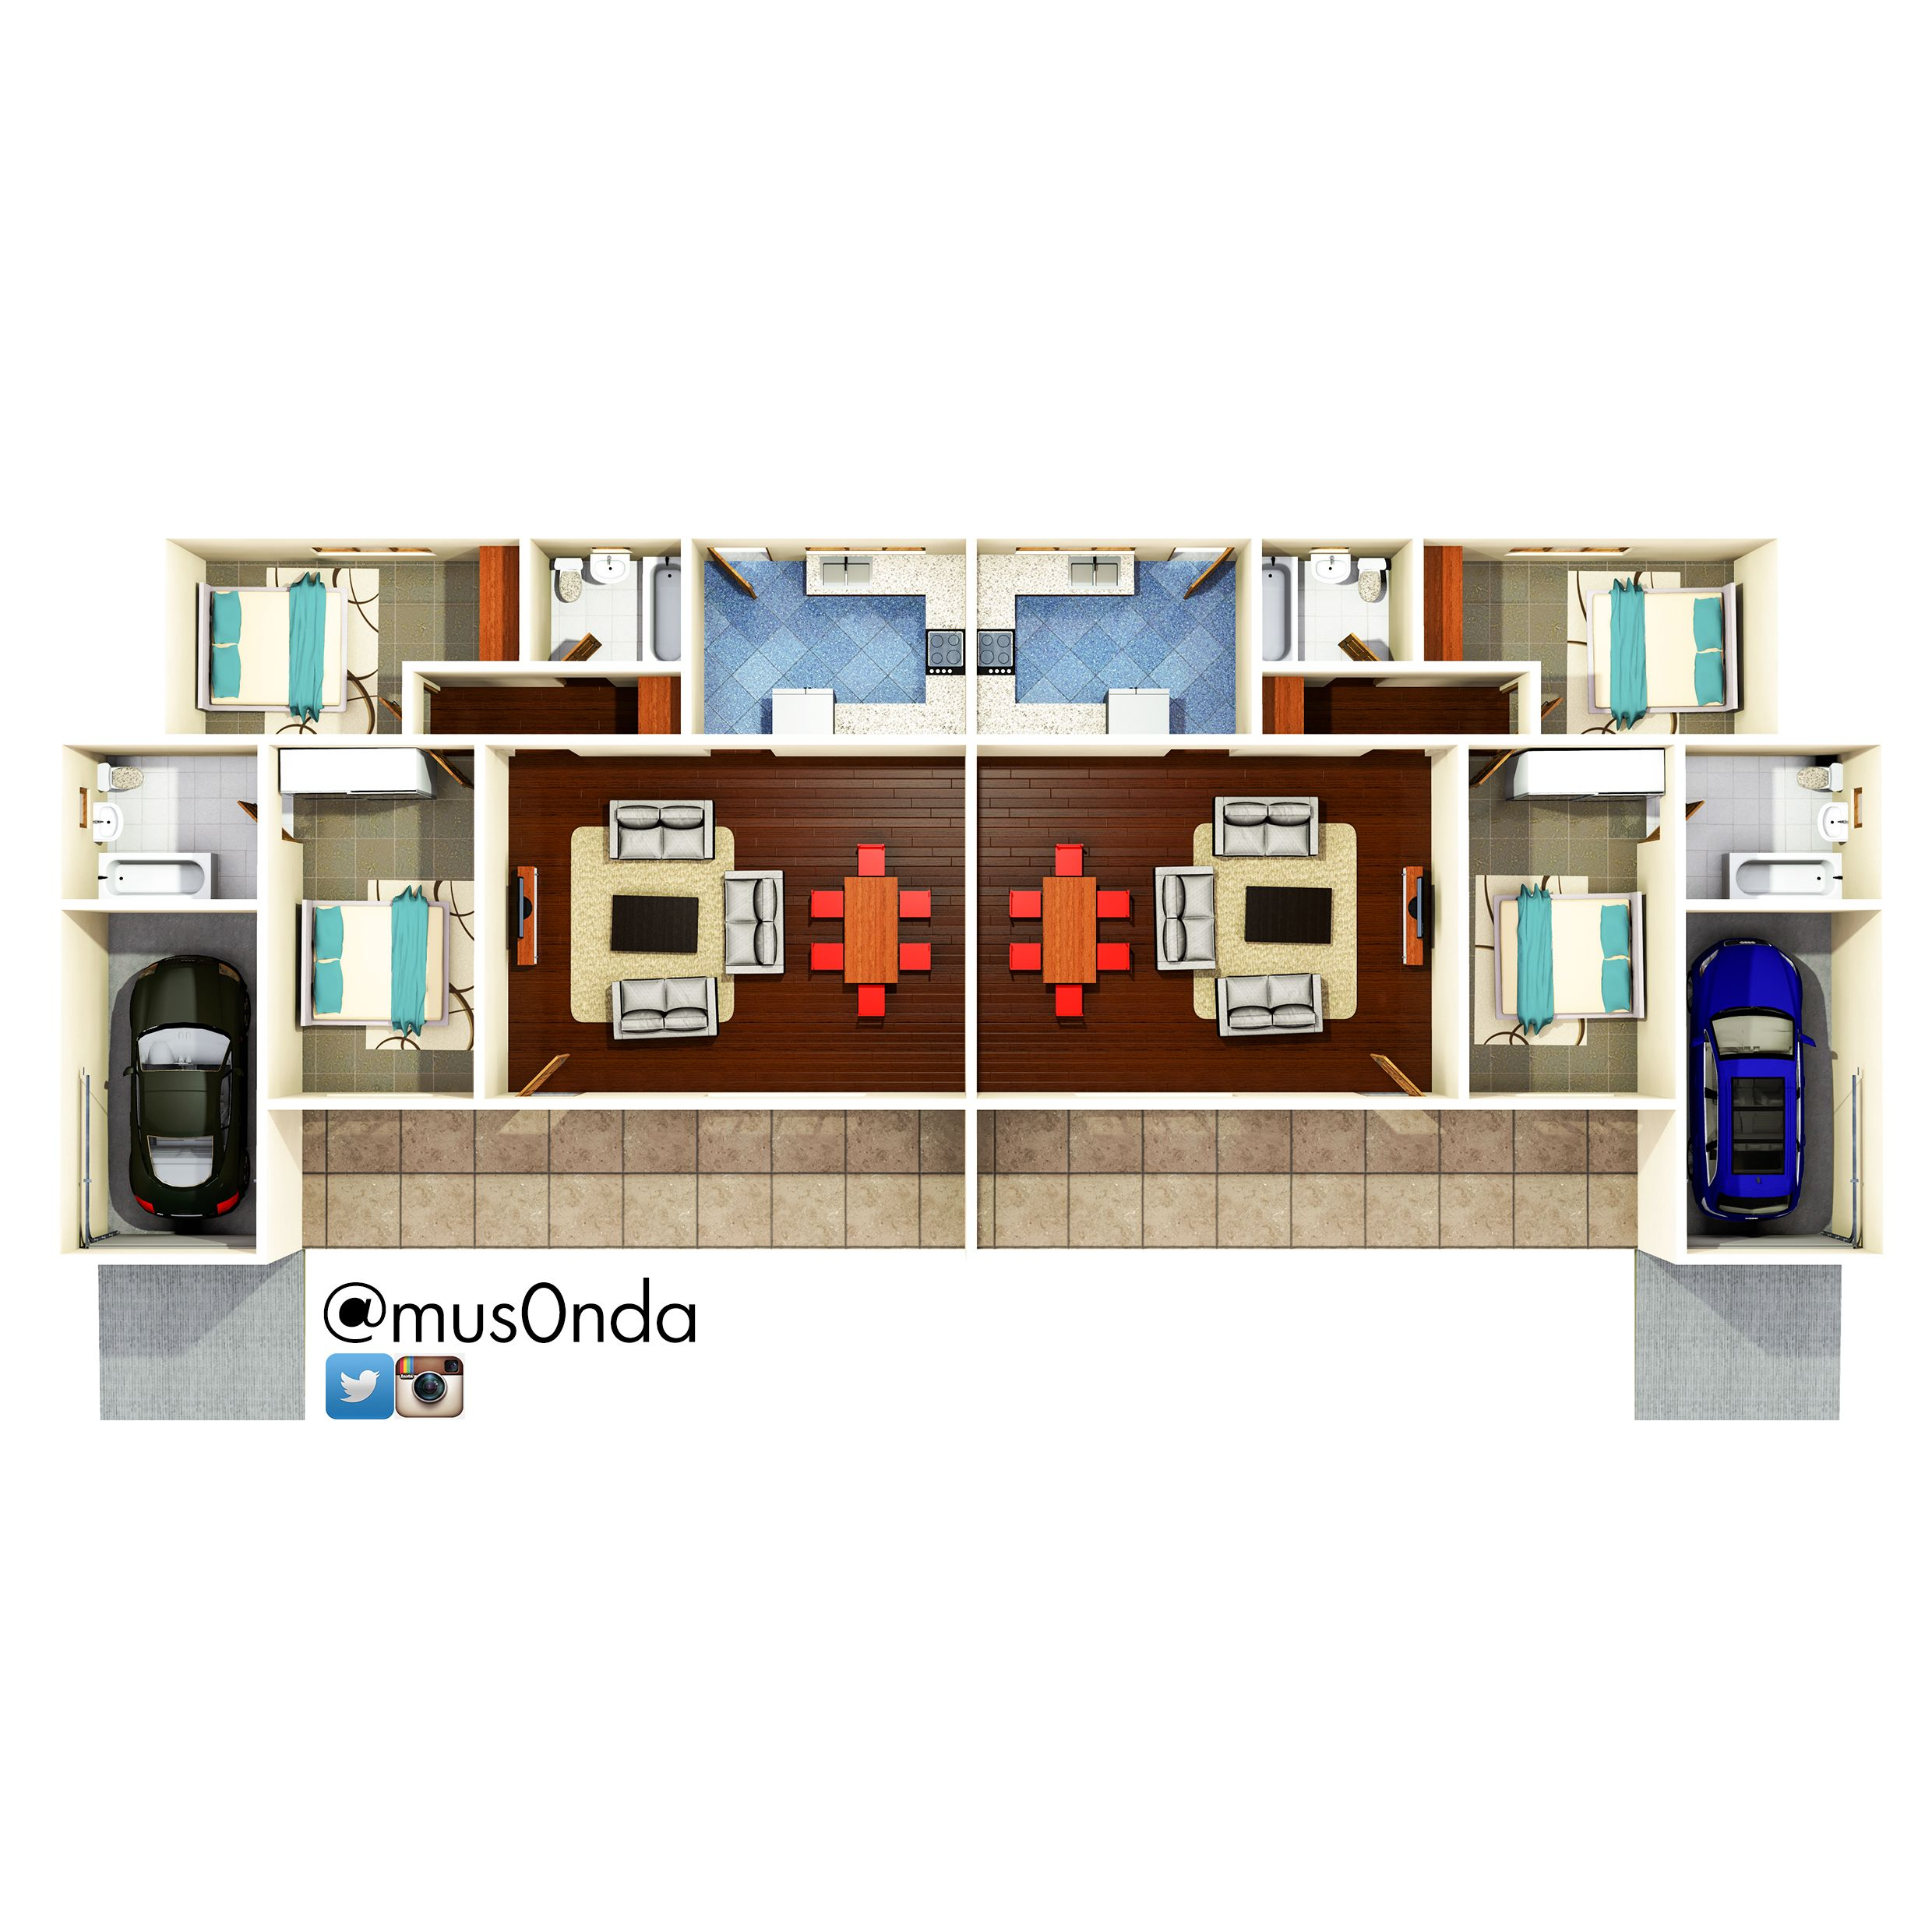 Semi Detached House 2 Bedroom Small House Design Plans 2 Bedroom House Plans Renting A House